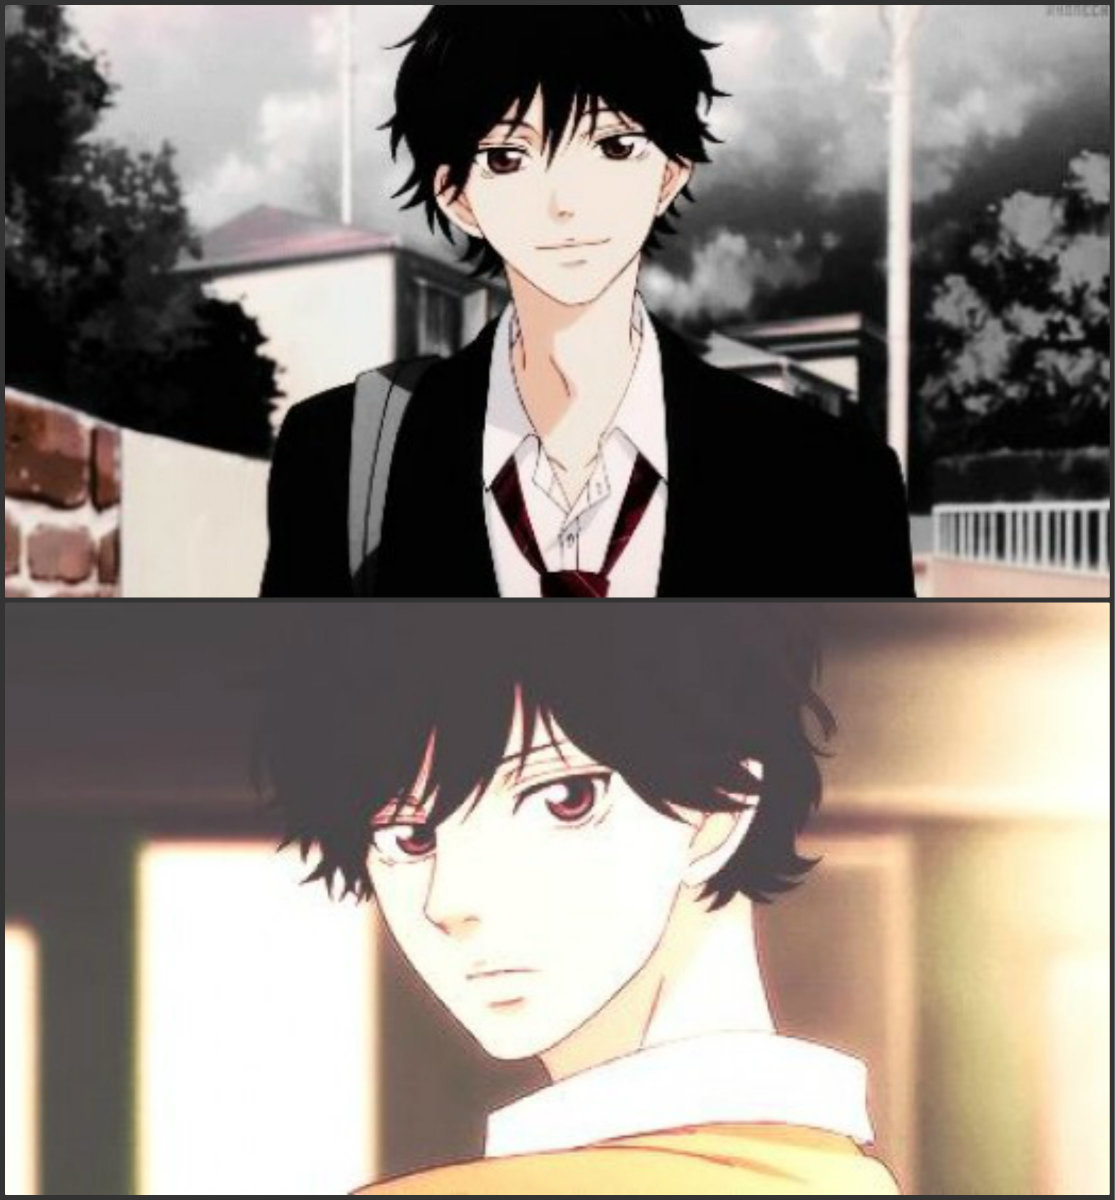 Bishounen: The Most Handsome Male Anime/Manga Characters Ever